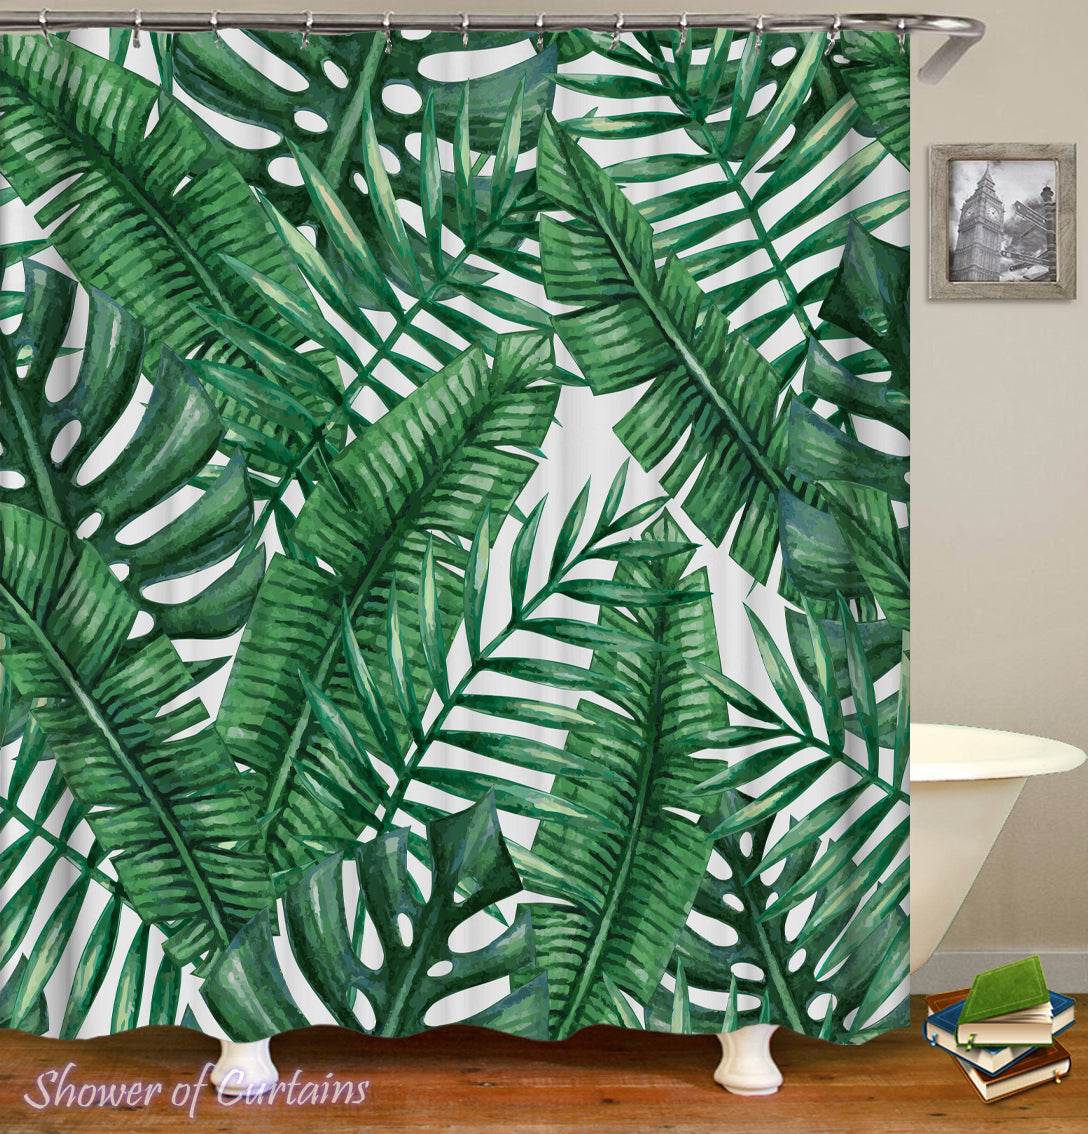 Shower Curtains | Green Leaves Painting – Shower of Curtains